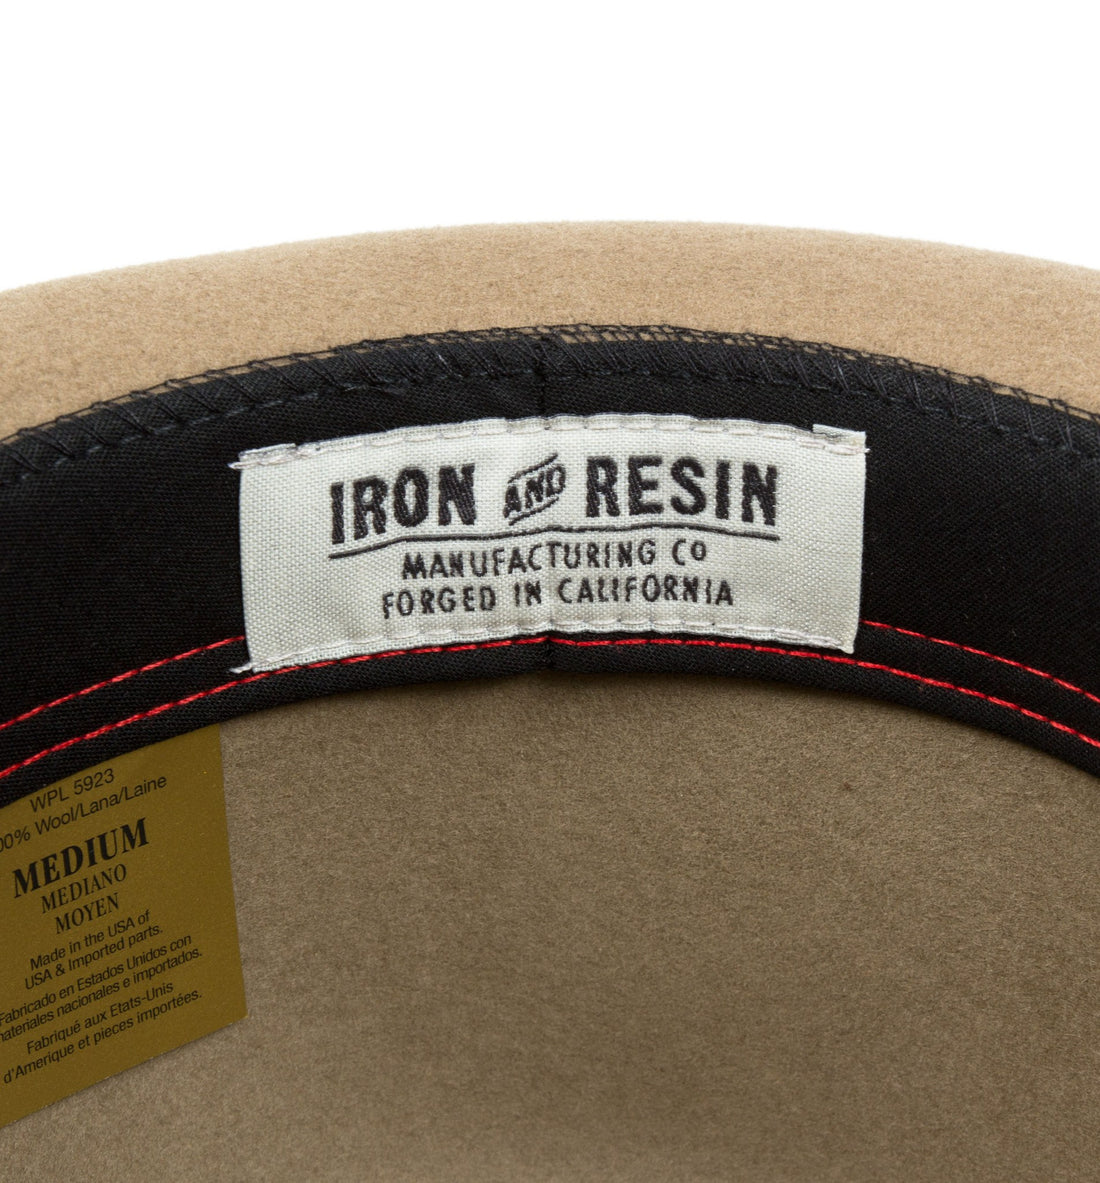 INR lead belly hat - Headwear - Iron and Resin